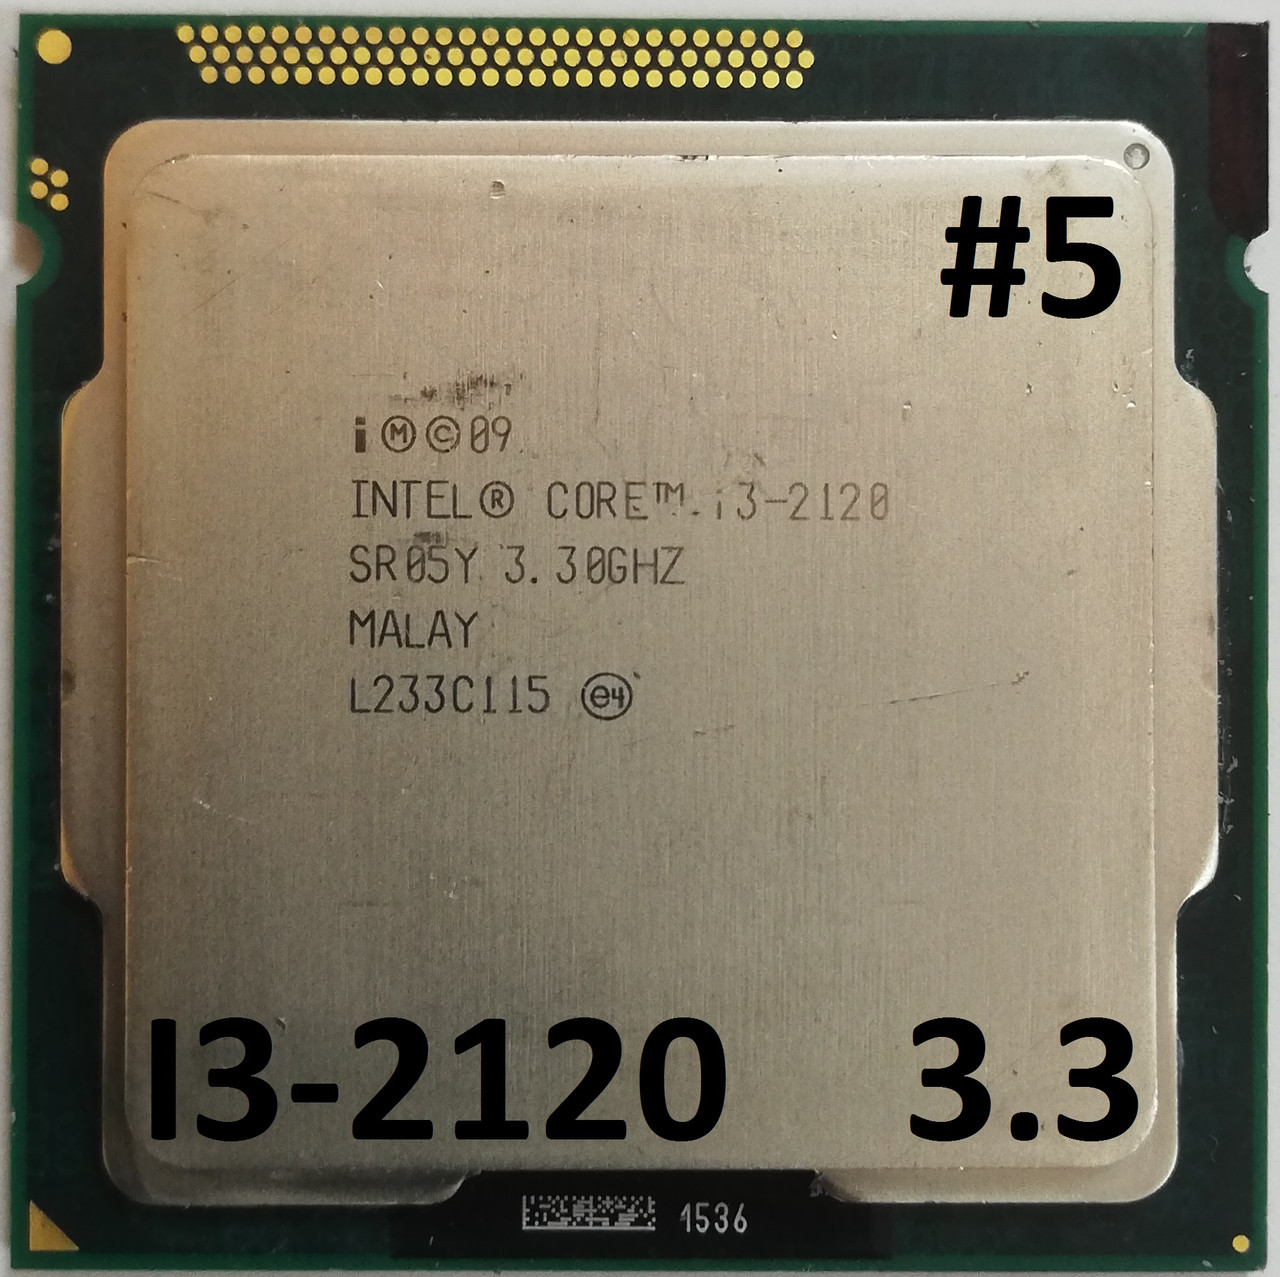 Процессор ЛОТ#5 Intel Core i3-2120 SR05Y 3.3GHz 3M Cache Socket 1155 Б/У